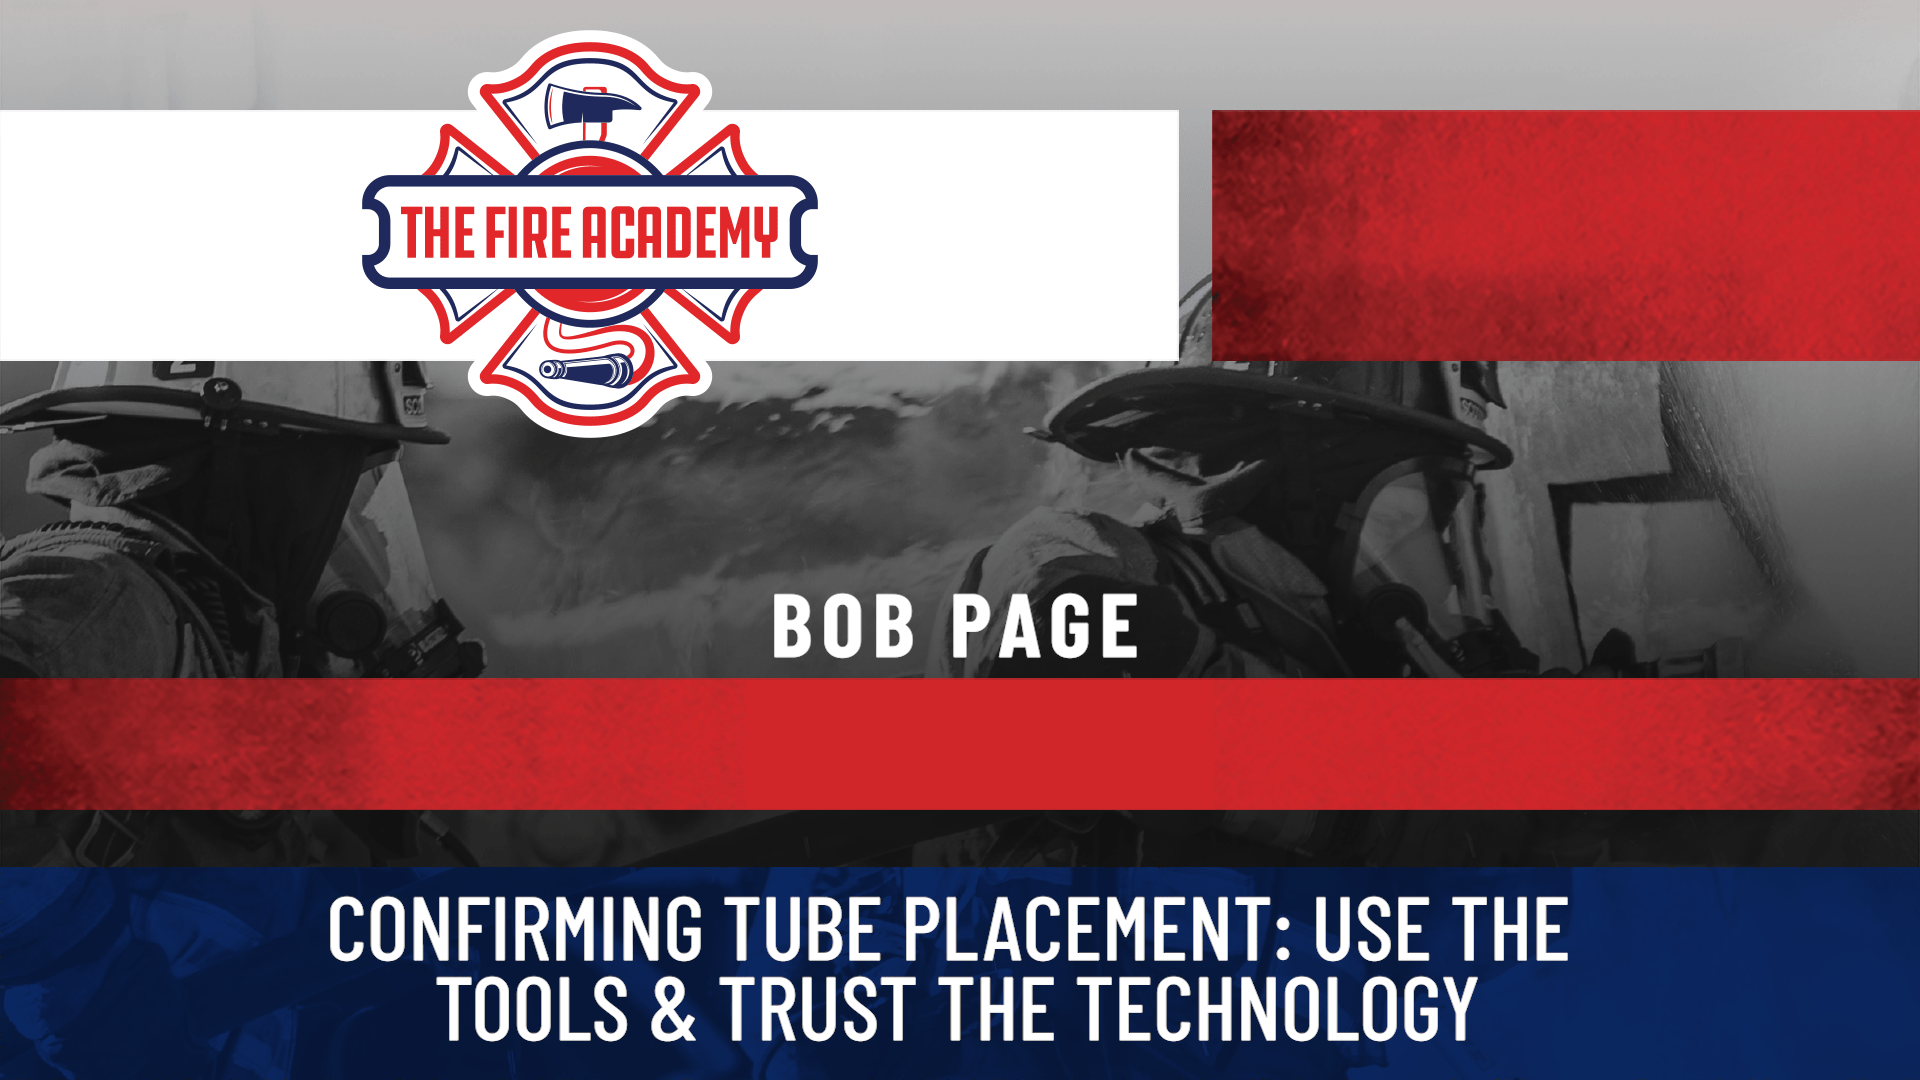 Confirming Tube Placement: Use the Tools & Trust the Technology